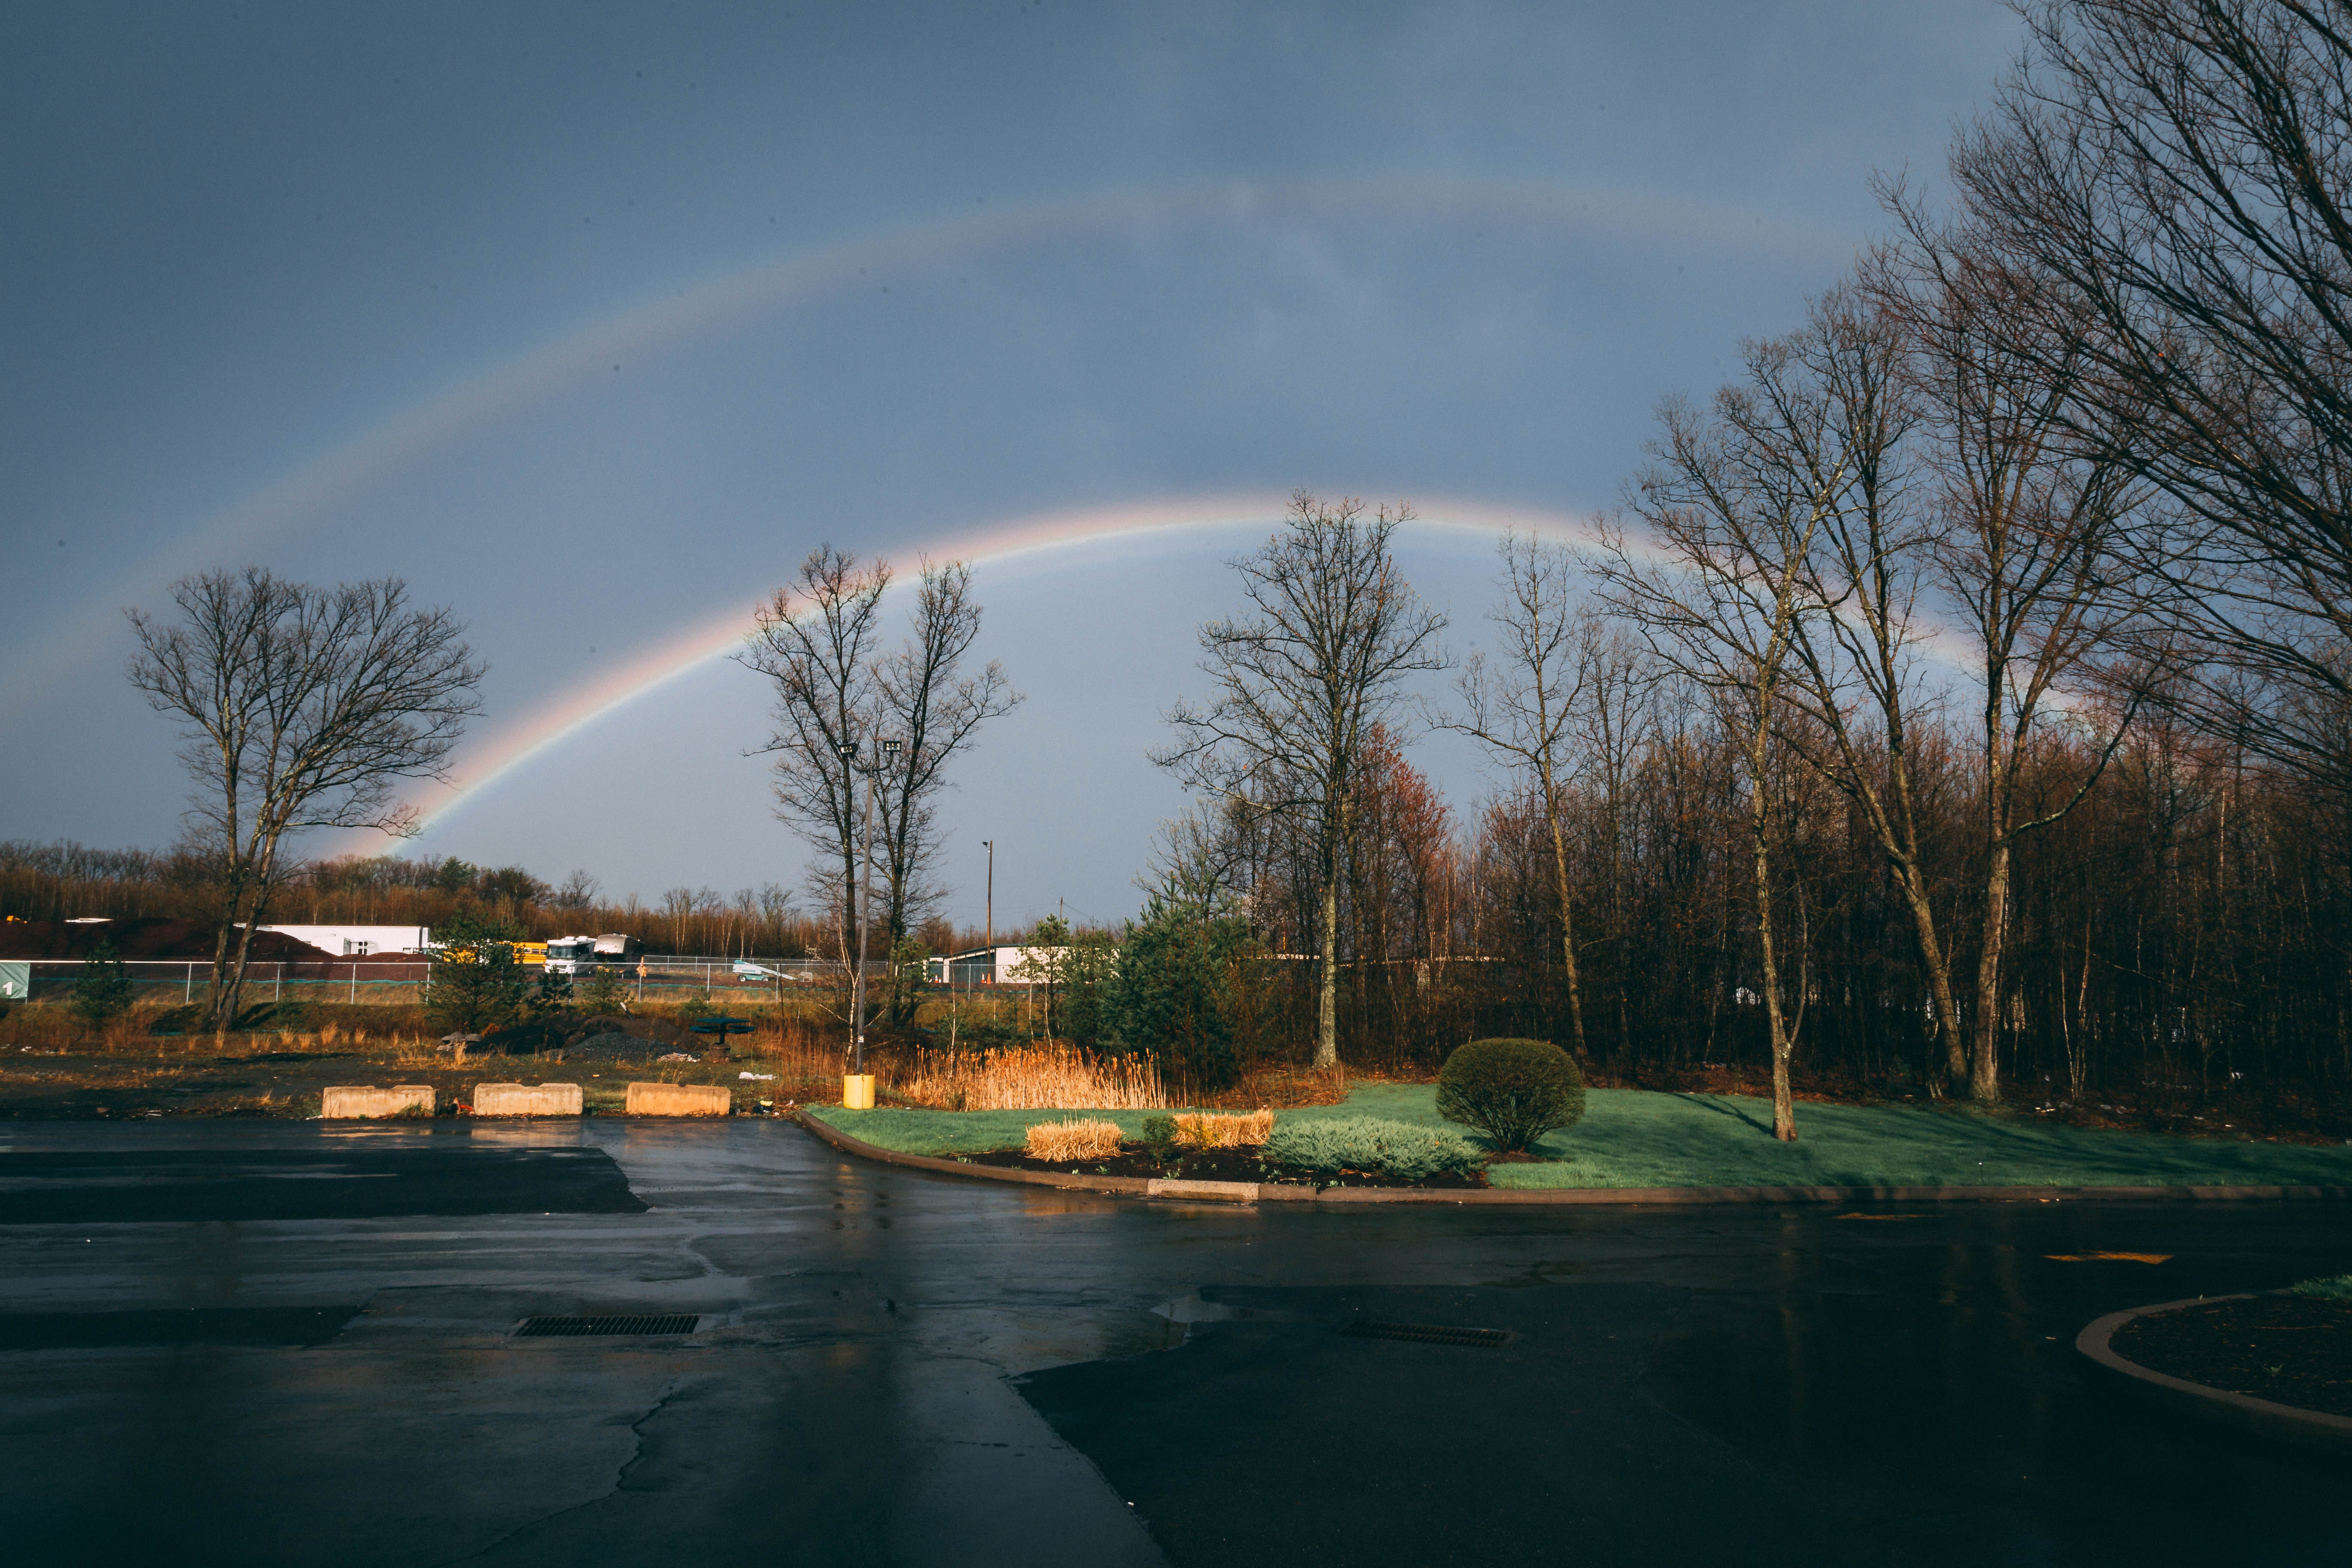 Rainbow over Houses and Trees